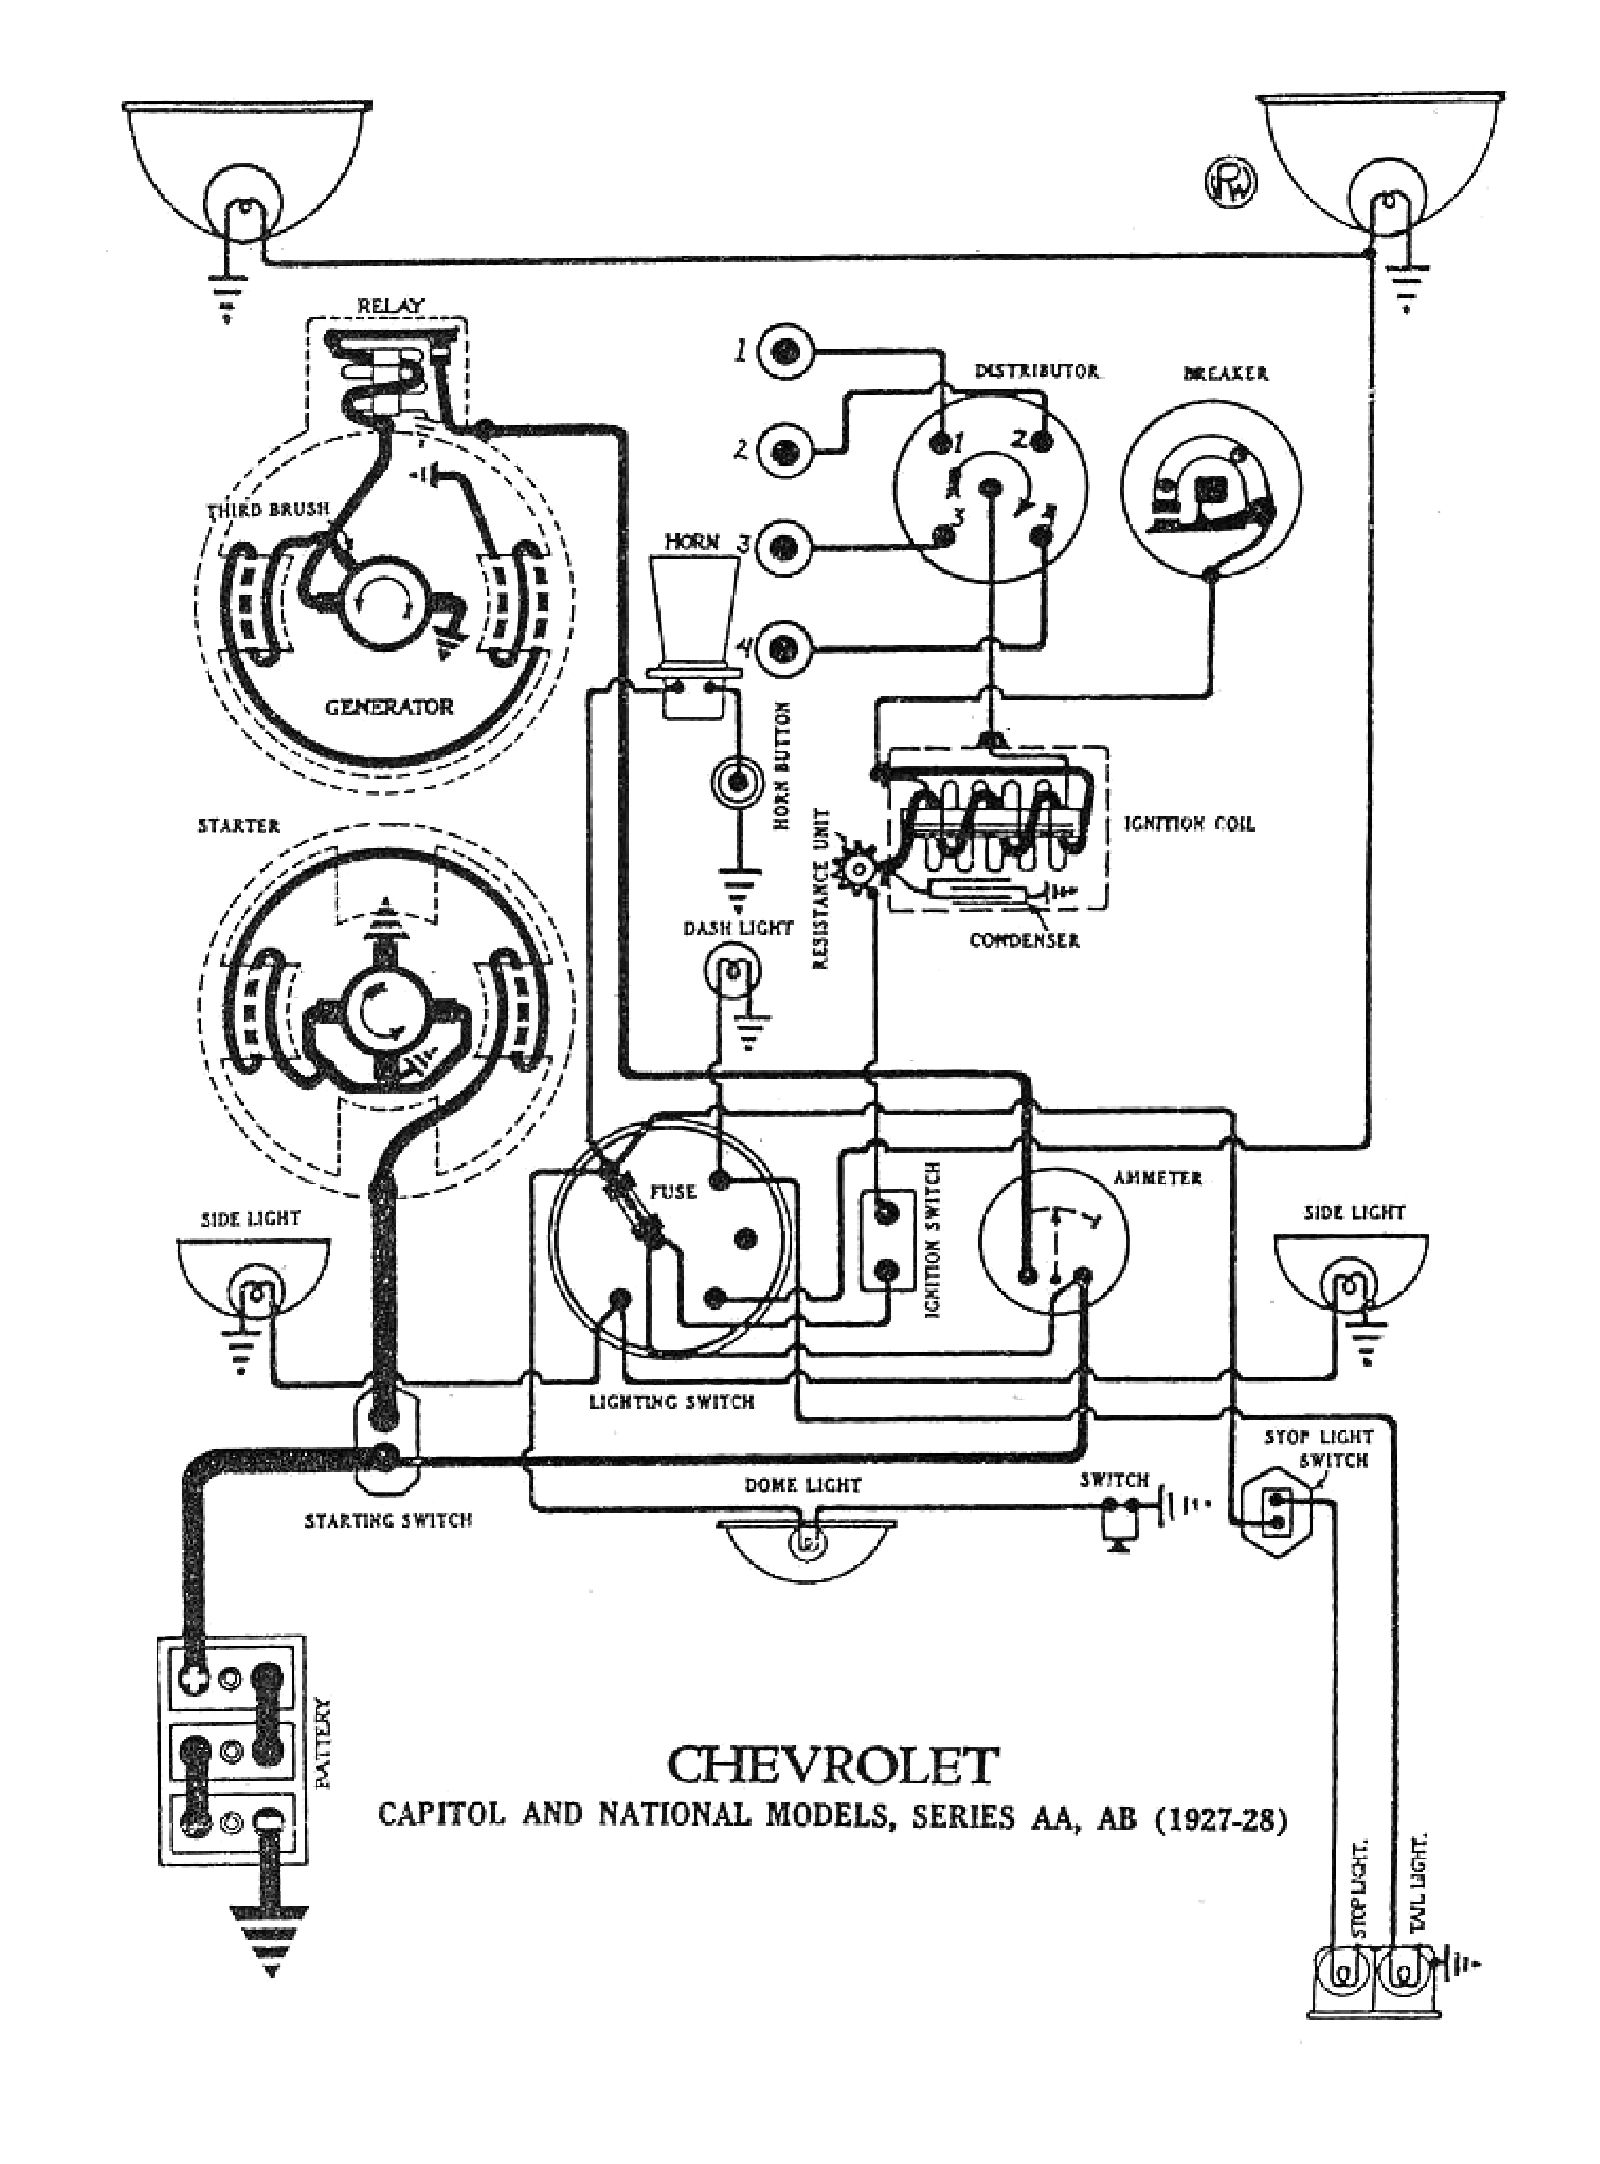 1930 model a ford wiring diagram html autos post Model A Wiring Harness 1930 Model a Ford Coil Wiring Diagram